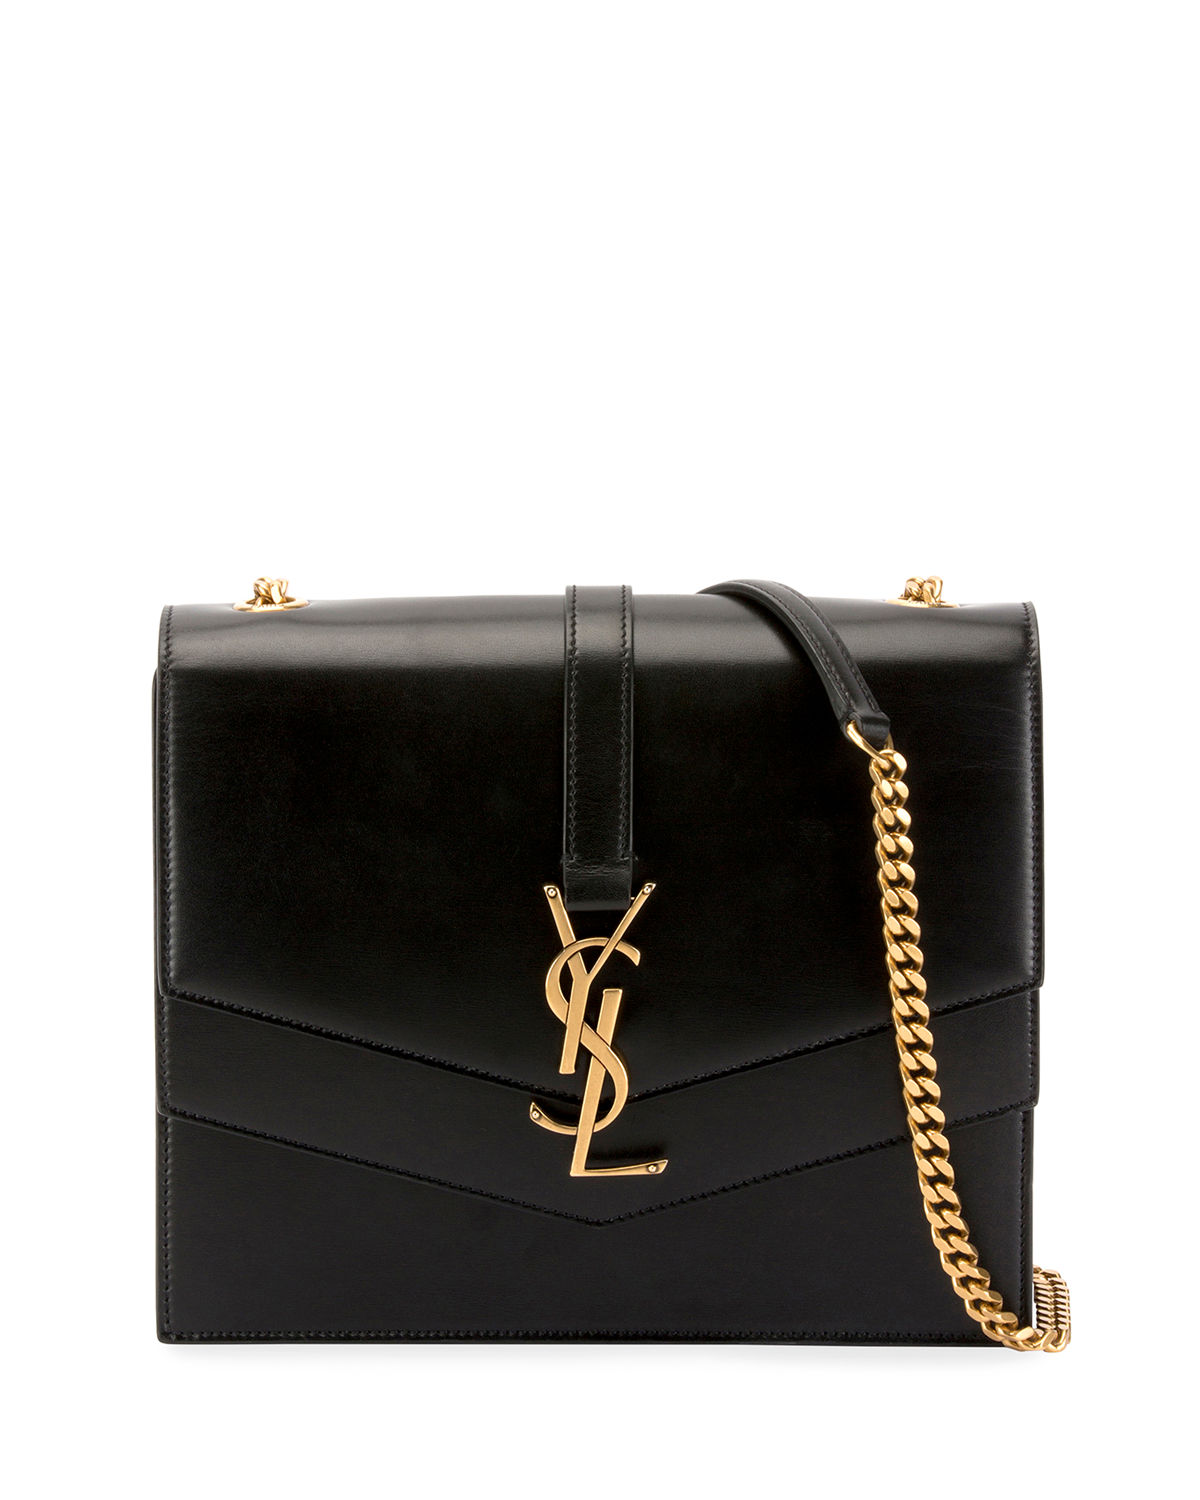 8ad0b3e441e Saint Laurent Sulpice Medium YSL Monogram Leather Triple V-Flap Crossbody  Bag